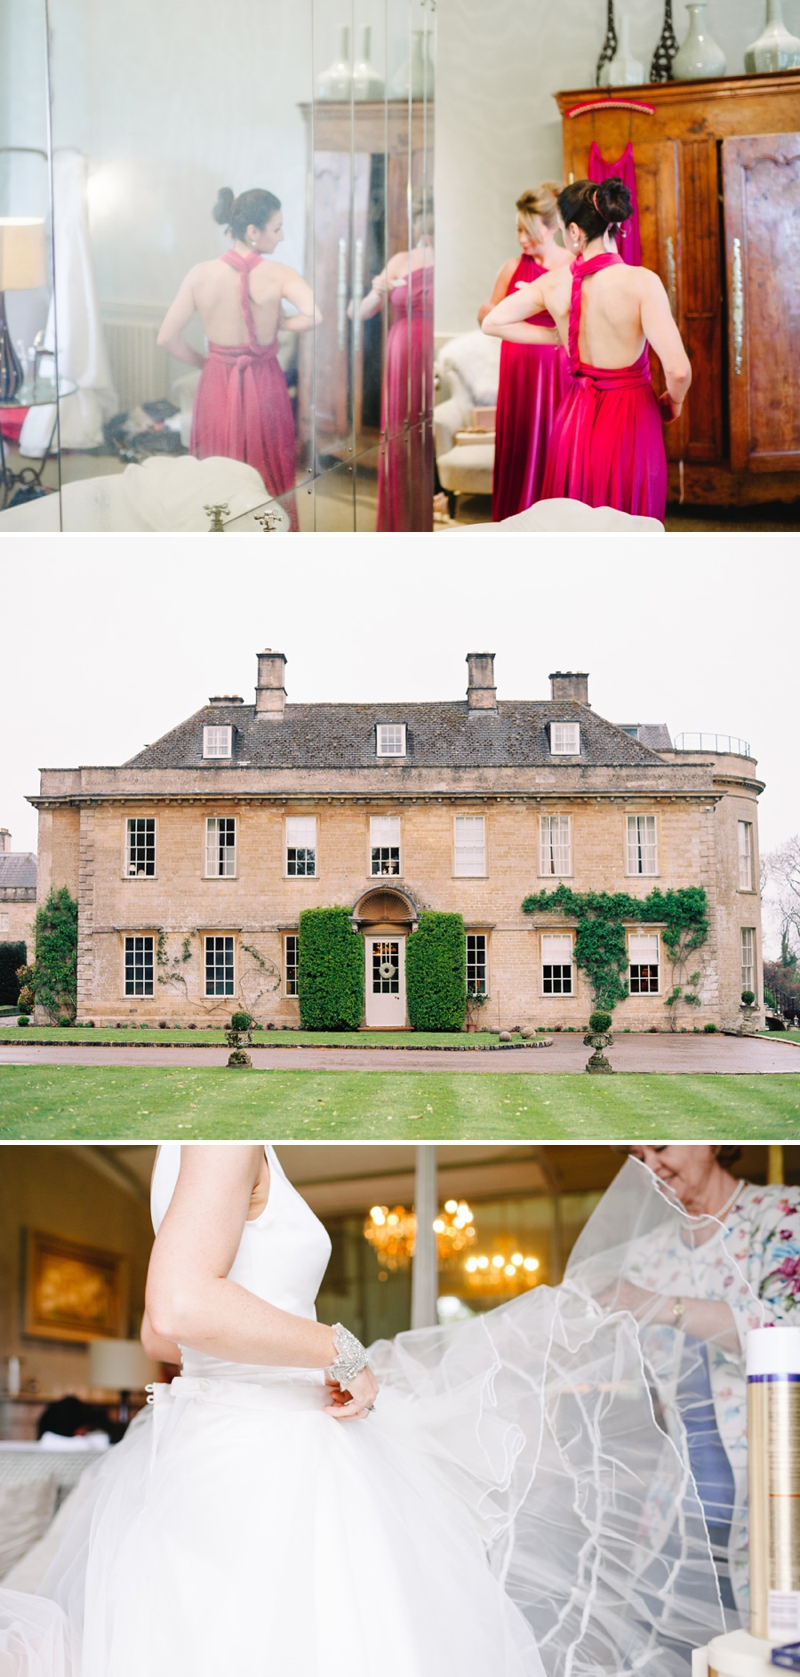 A sophisticated wedding at Babington house with Kate Spade pink shoes by Ann-Kathrin Koch_0521